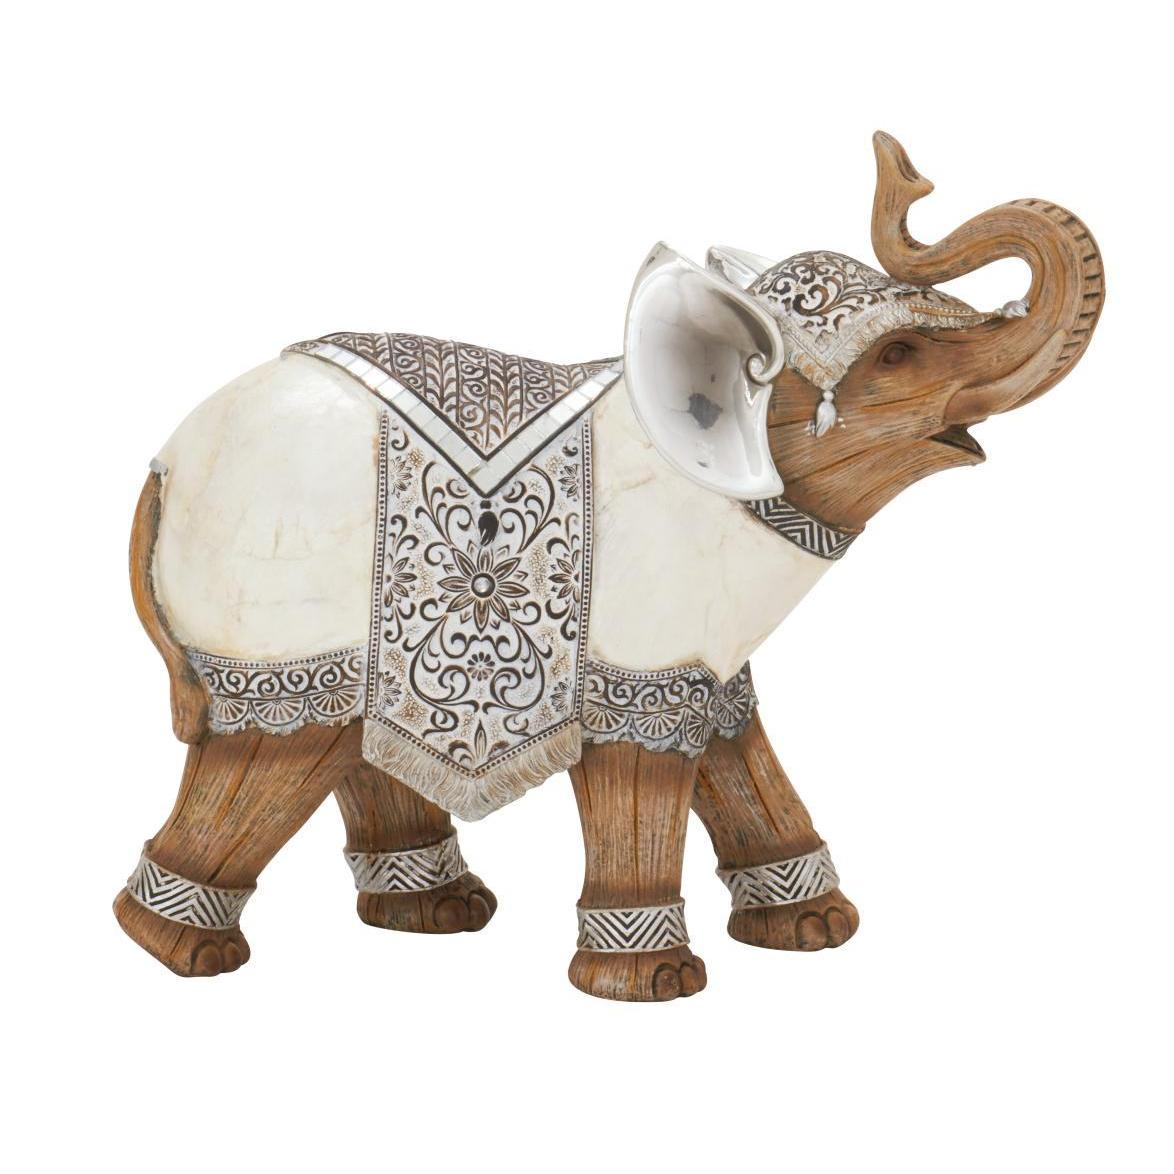 The Curated Nomad Merced Tan and White Resin Adorned Elephant Figurine (Dcor)